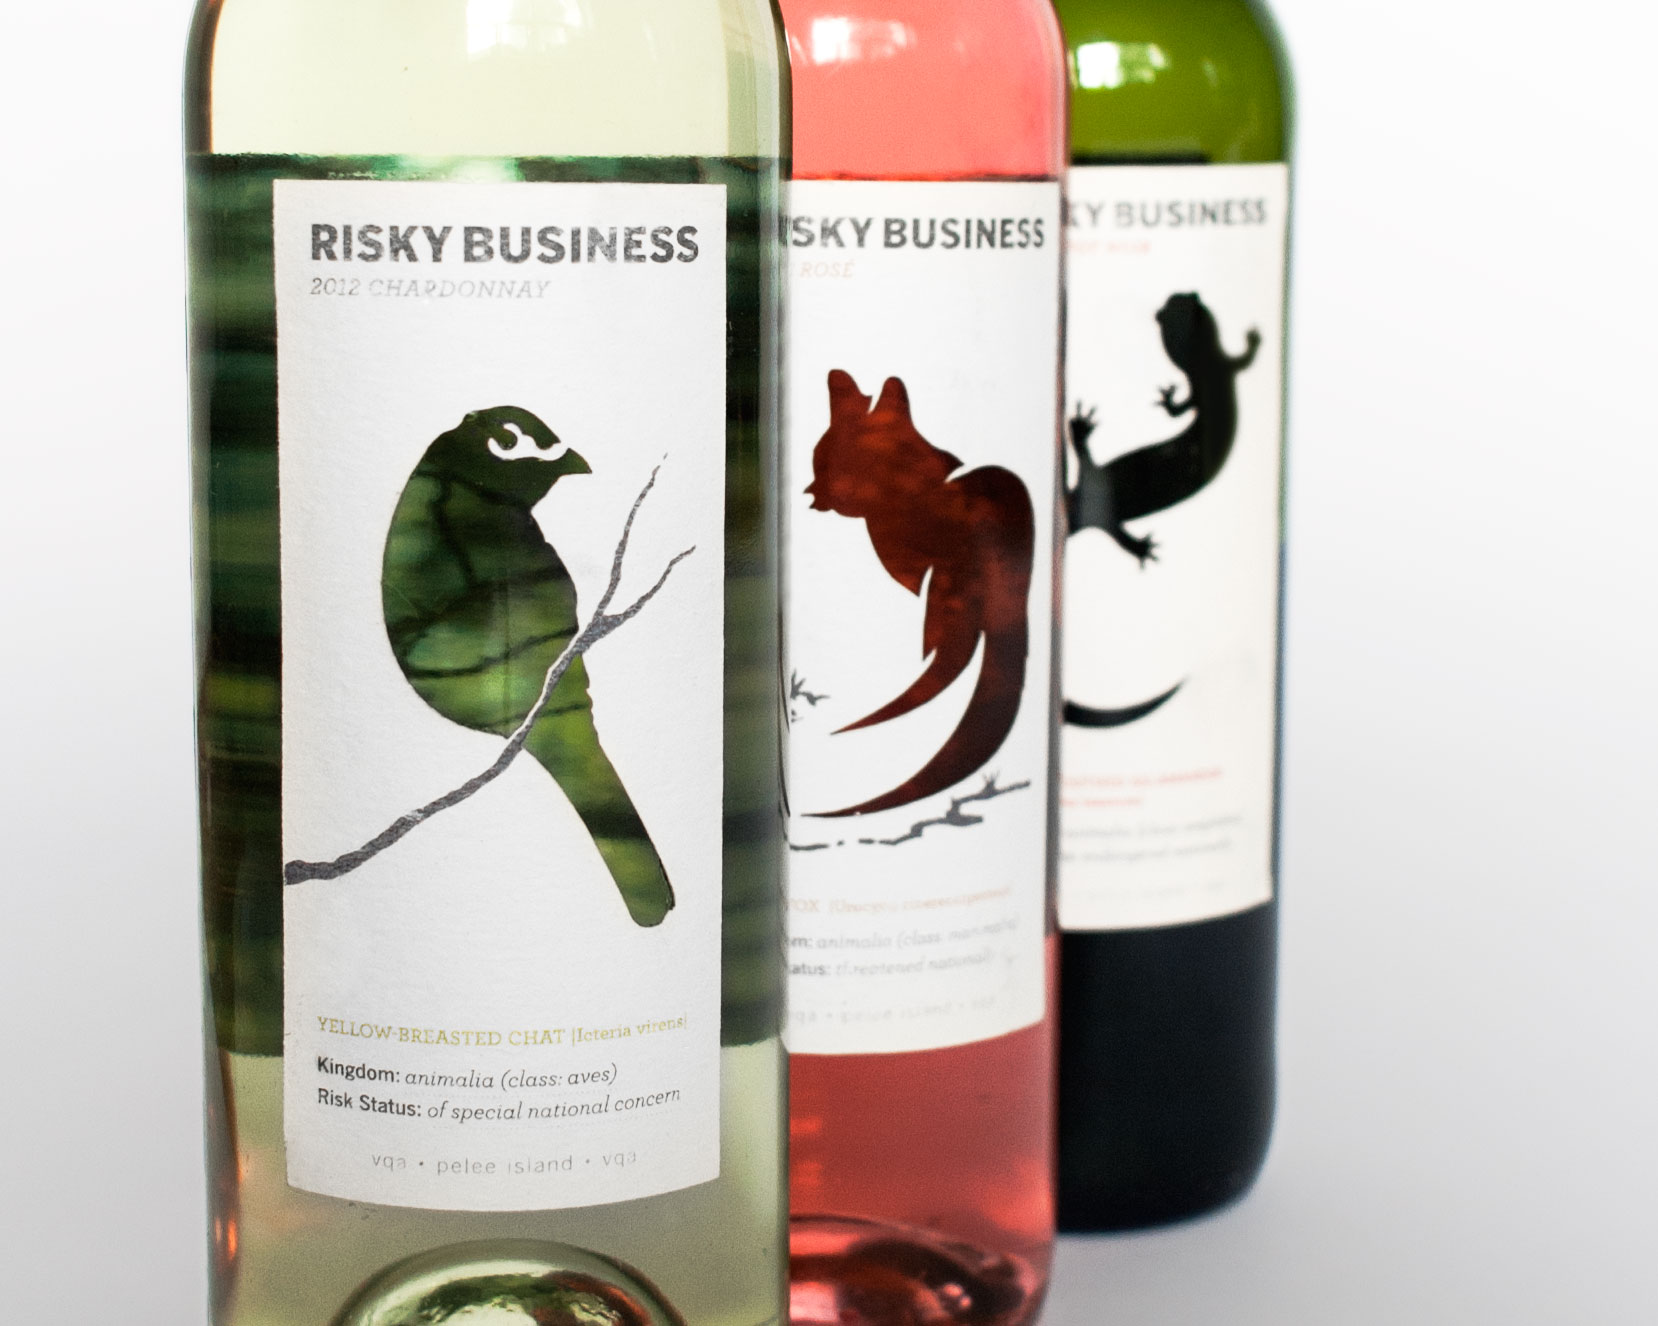 RISKY BUSINESS WINE